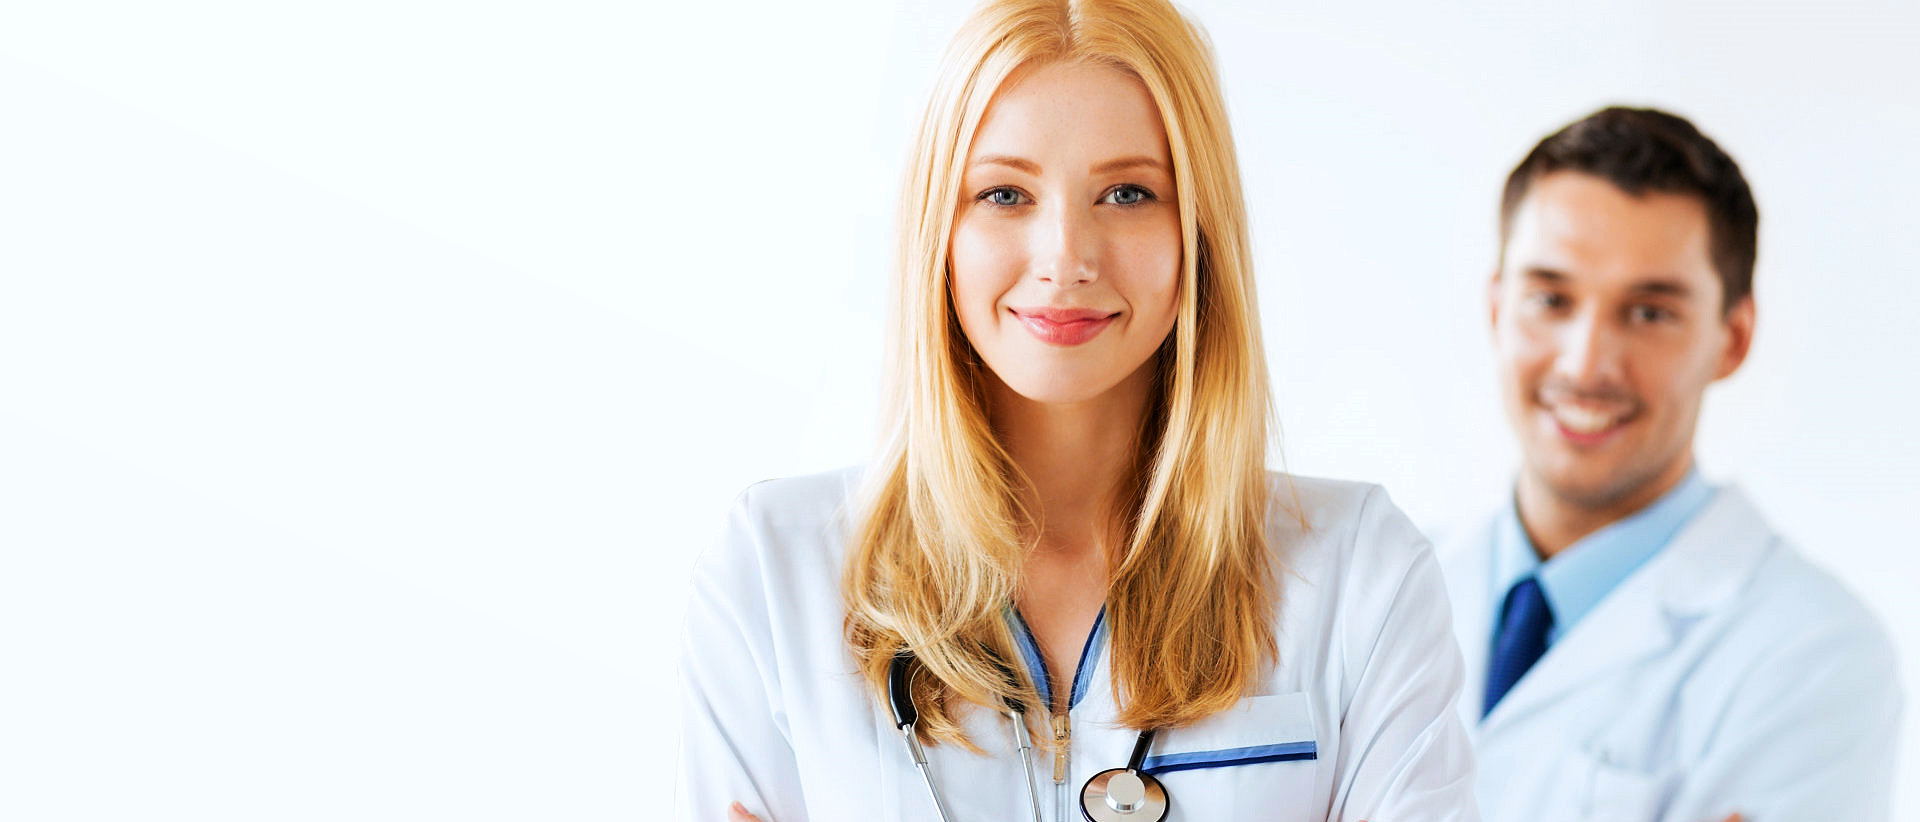 woman with stethoscope smiling